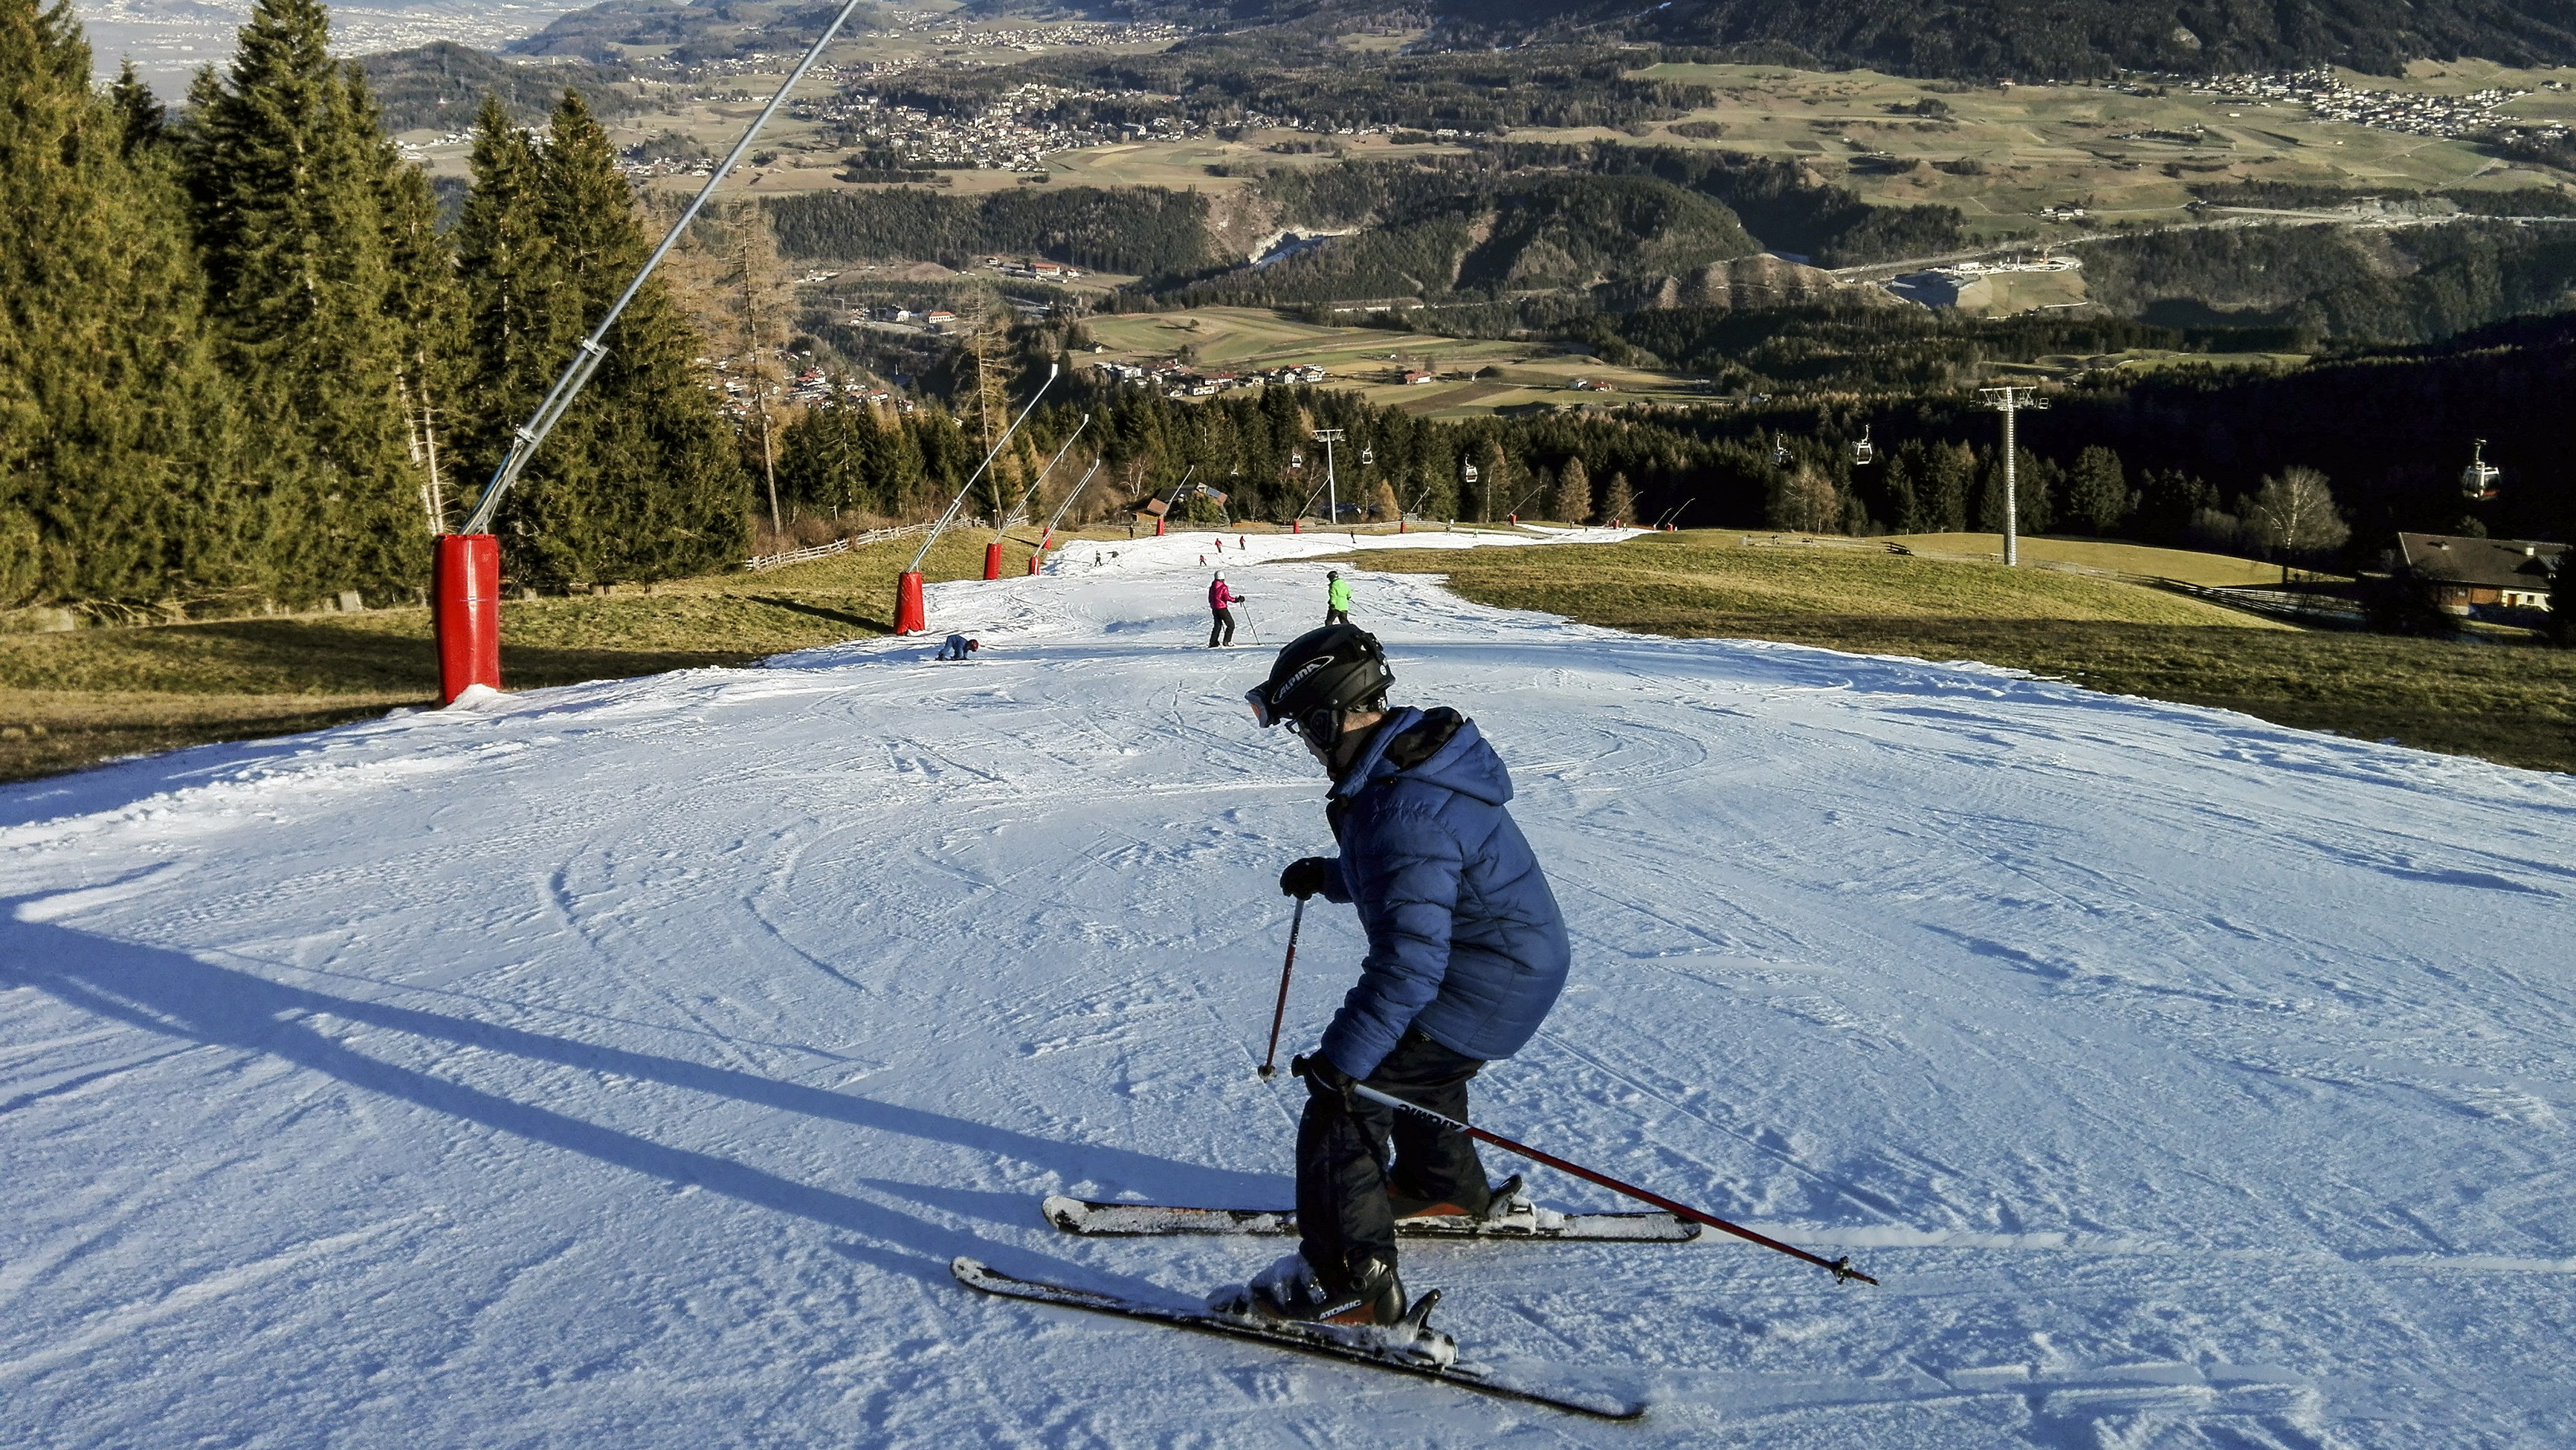 A skier skis down a patch of artificial snow in the ski resort of Mutters